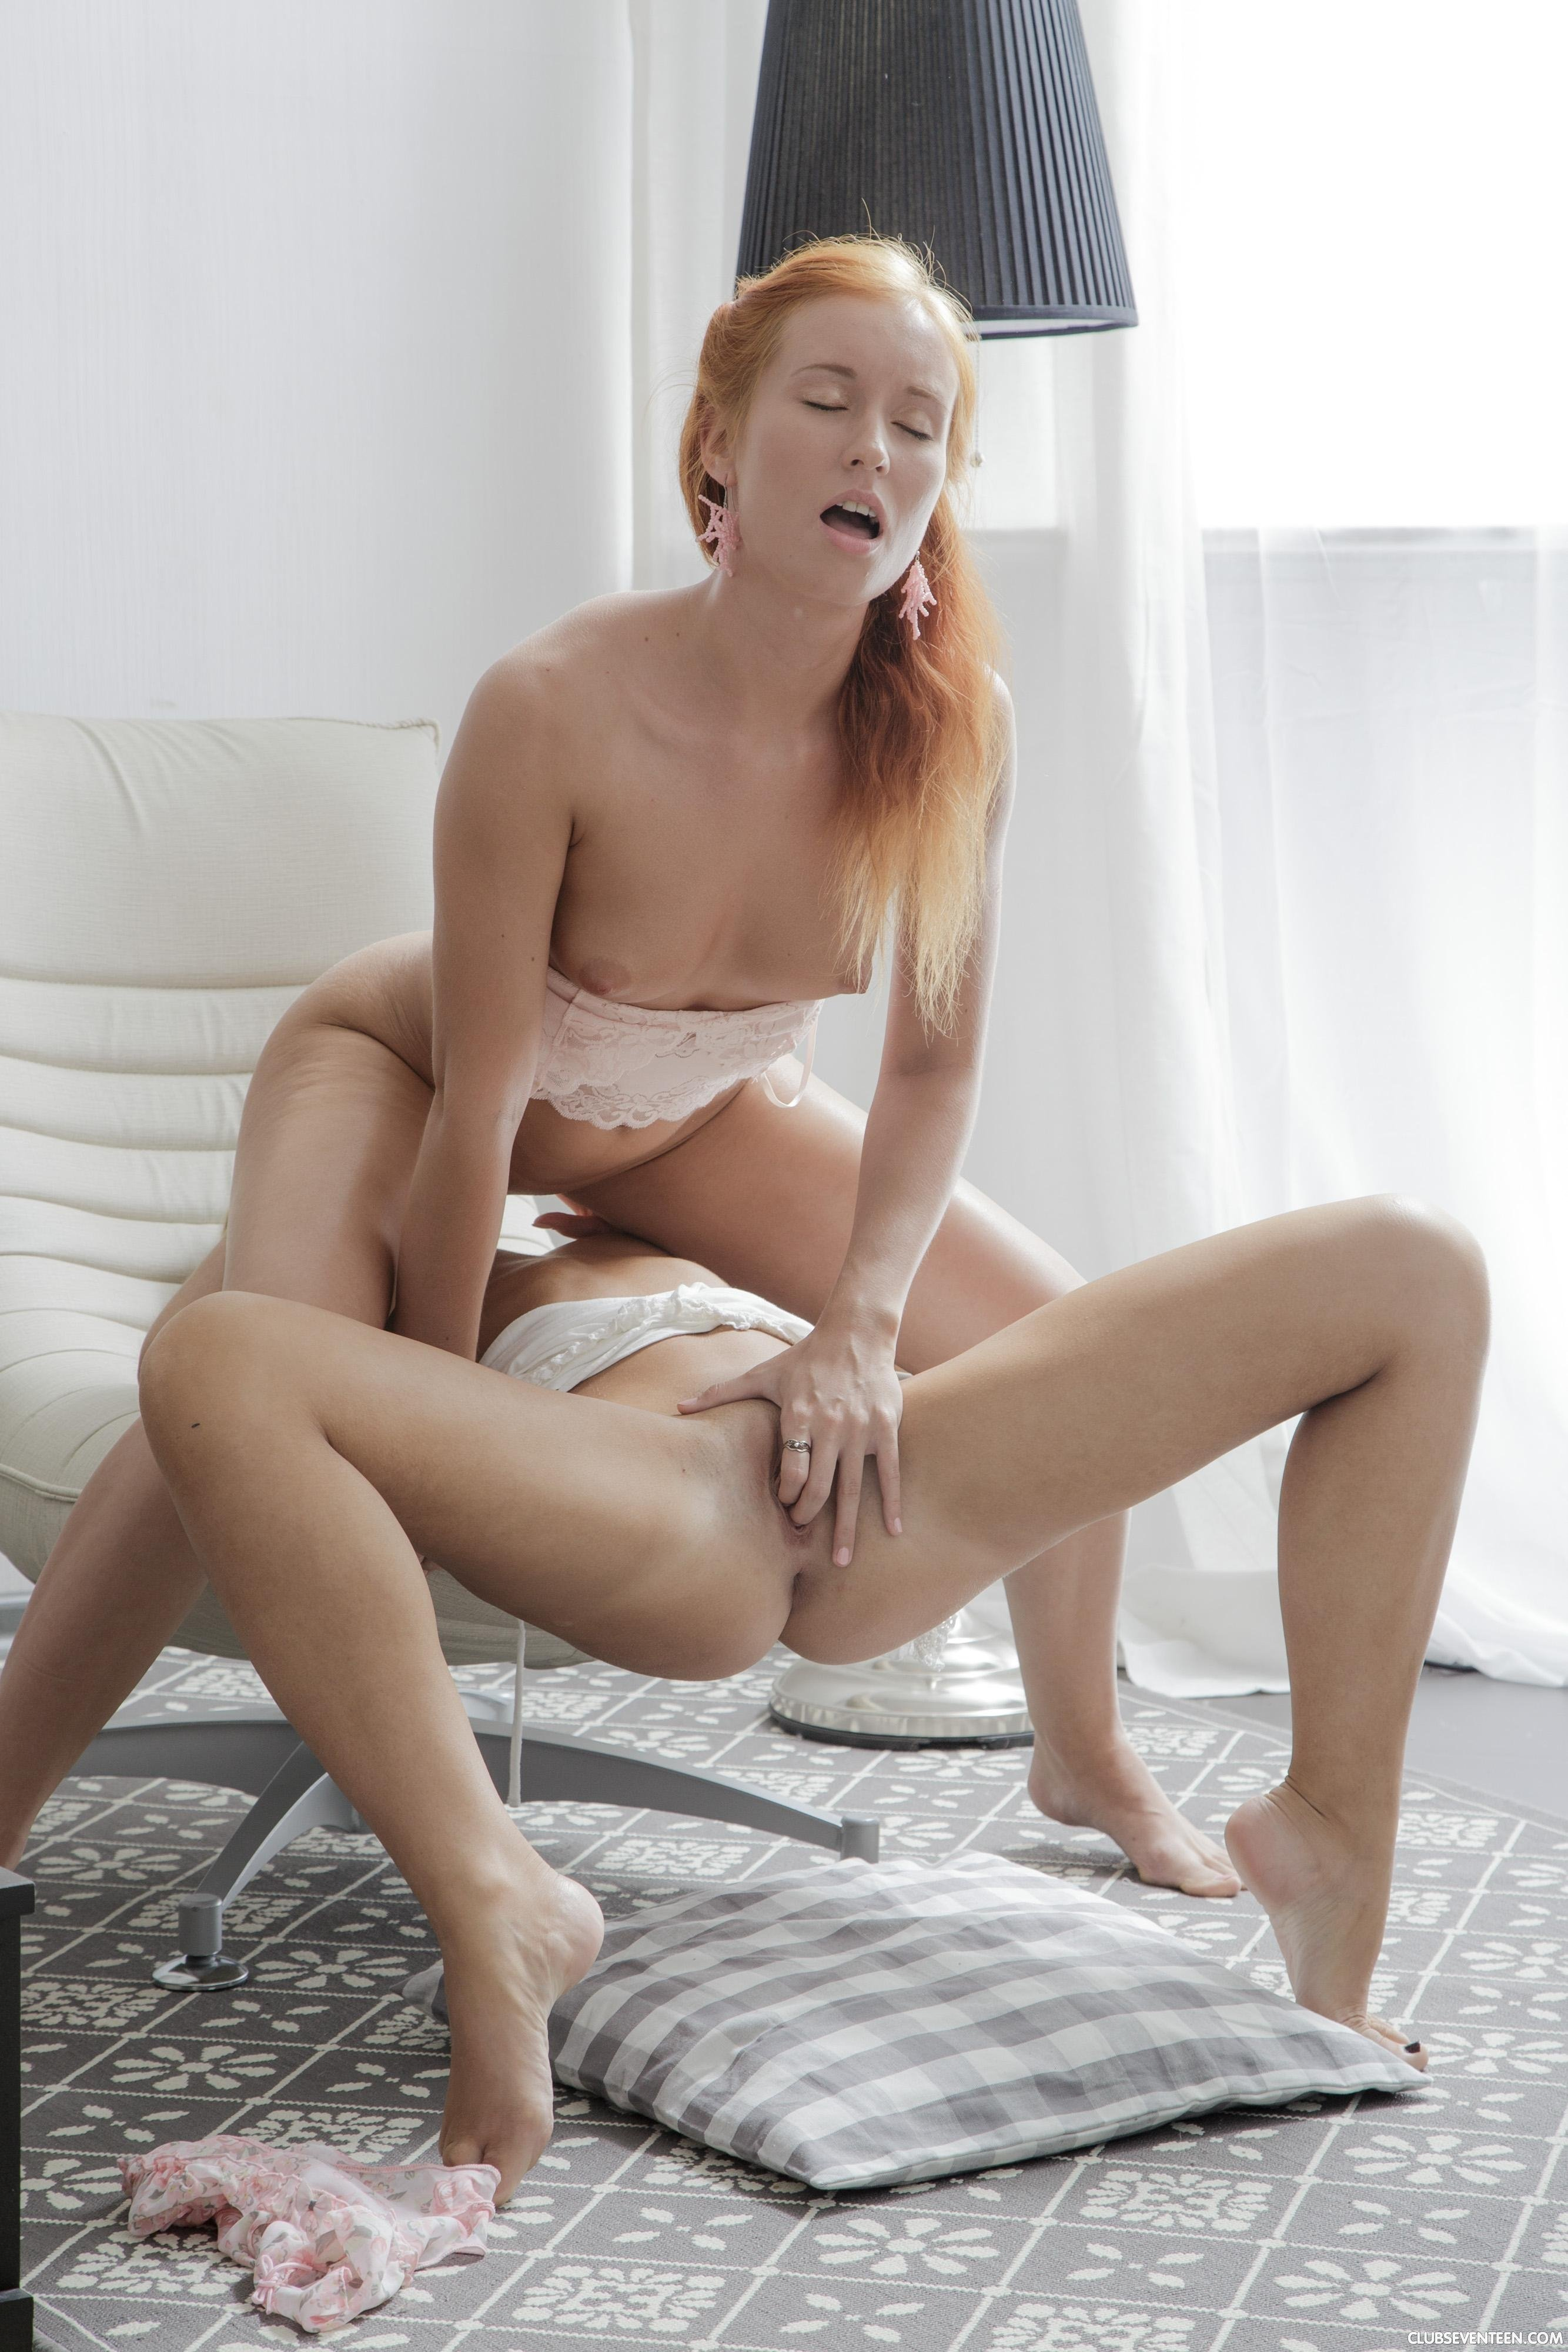 xhamster anal hairy